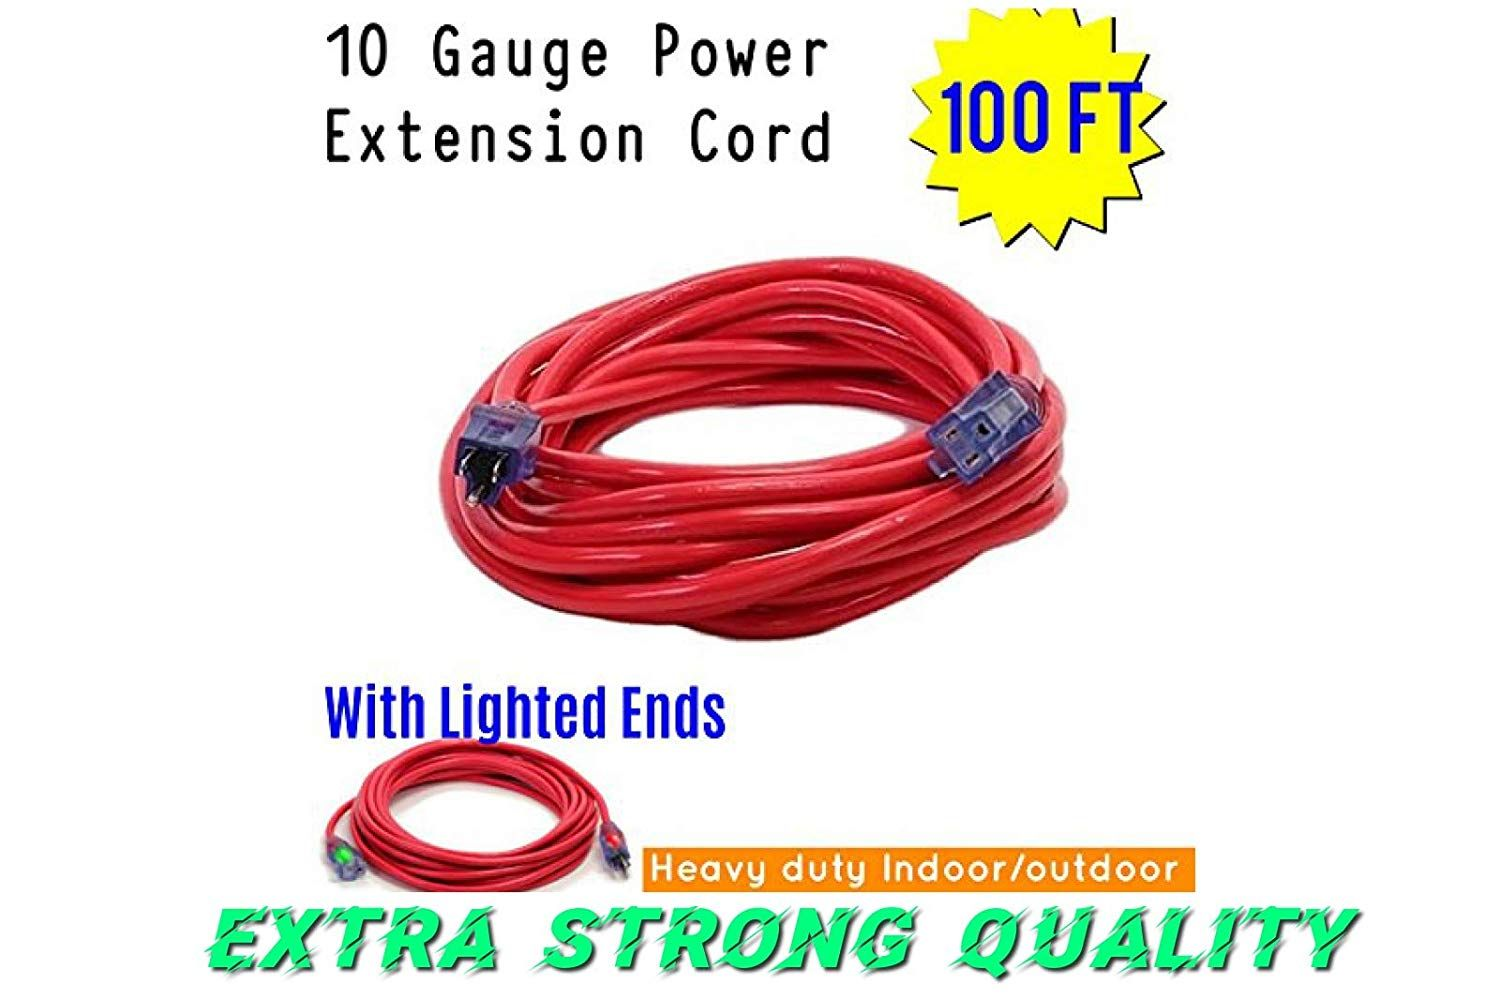 Century Contractor Grade 100 Ft 10 Gauge Power Extension Cord 10 3 Plug 100 Ft 10 Gauge Heavy Duty Indoor Out Outdoor Extension Cord Extension Cord Contractors